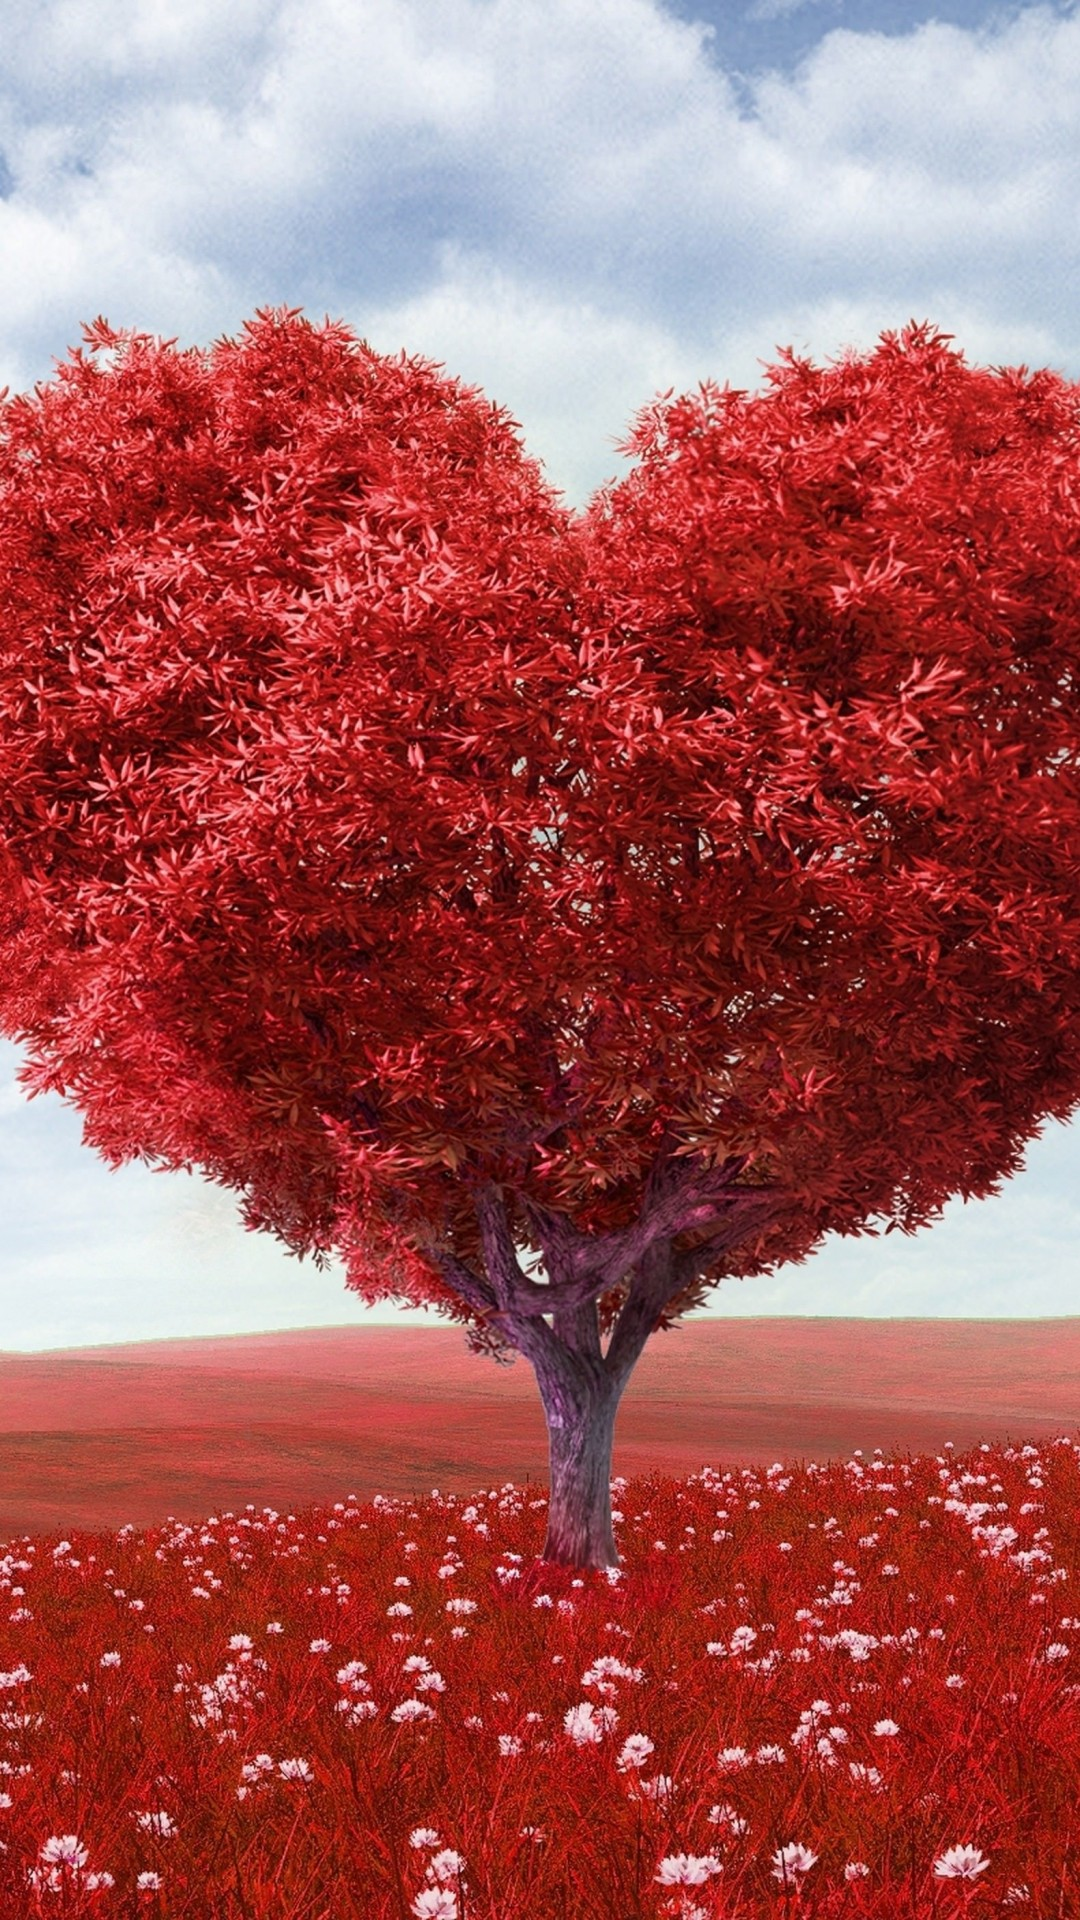 The Tree Of Love Wallpaper for SONY Xperia Z1